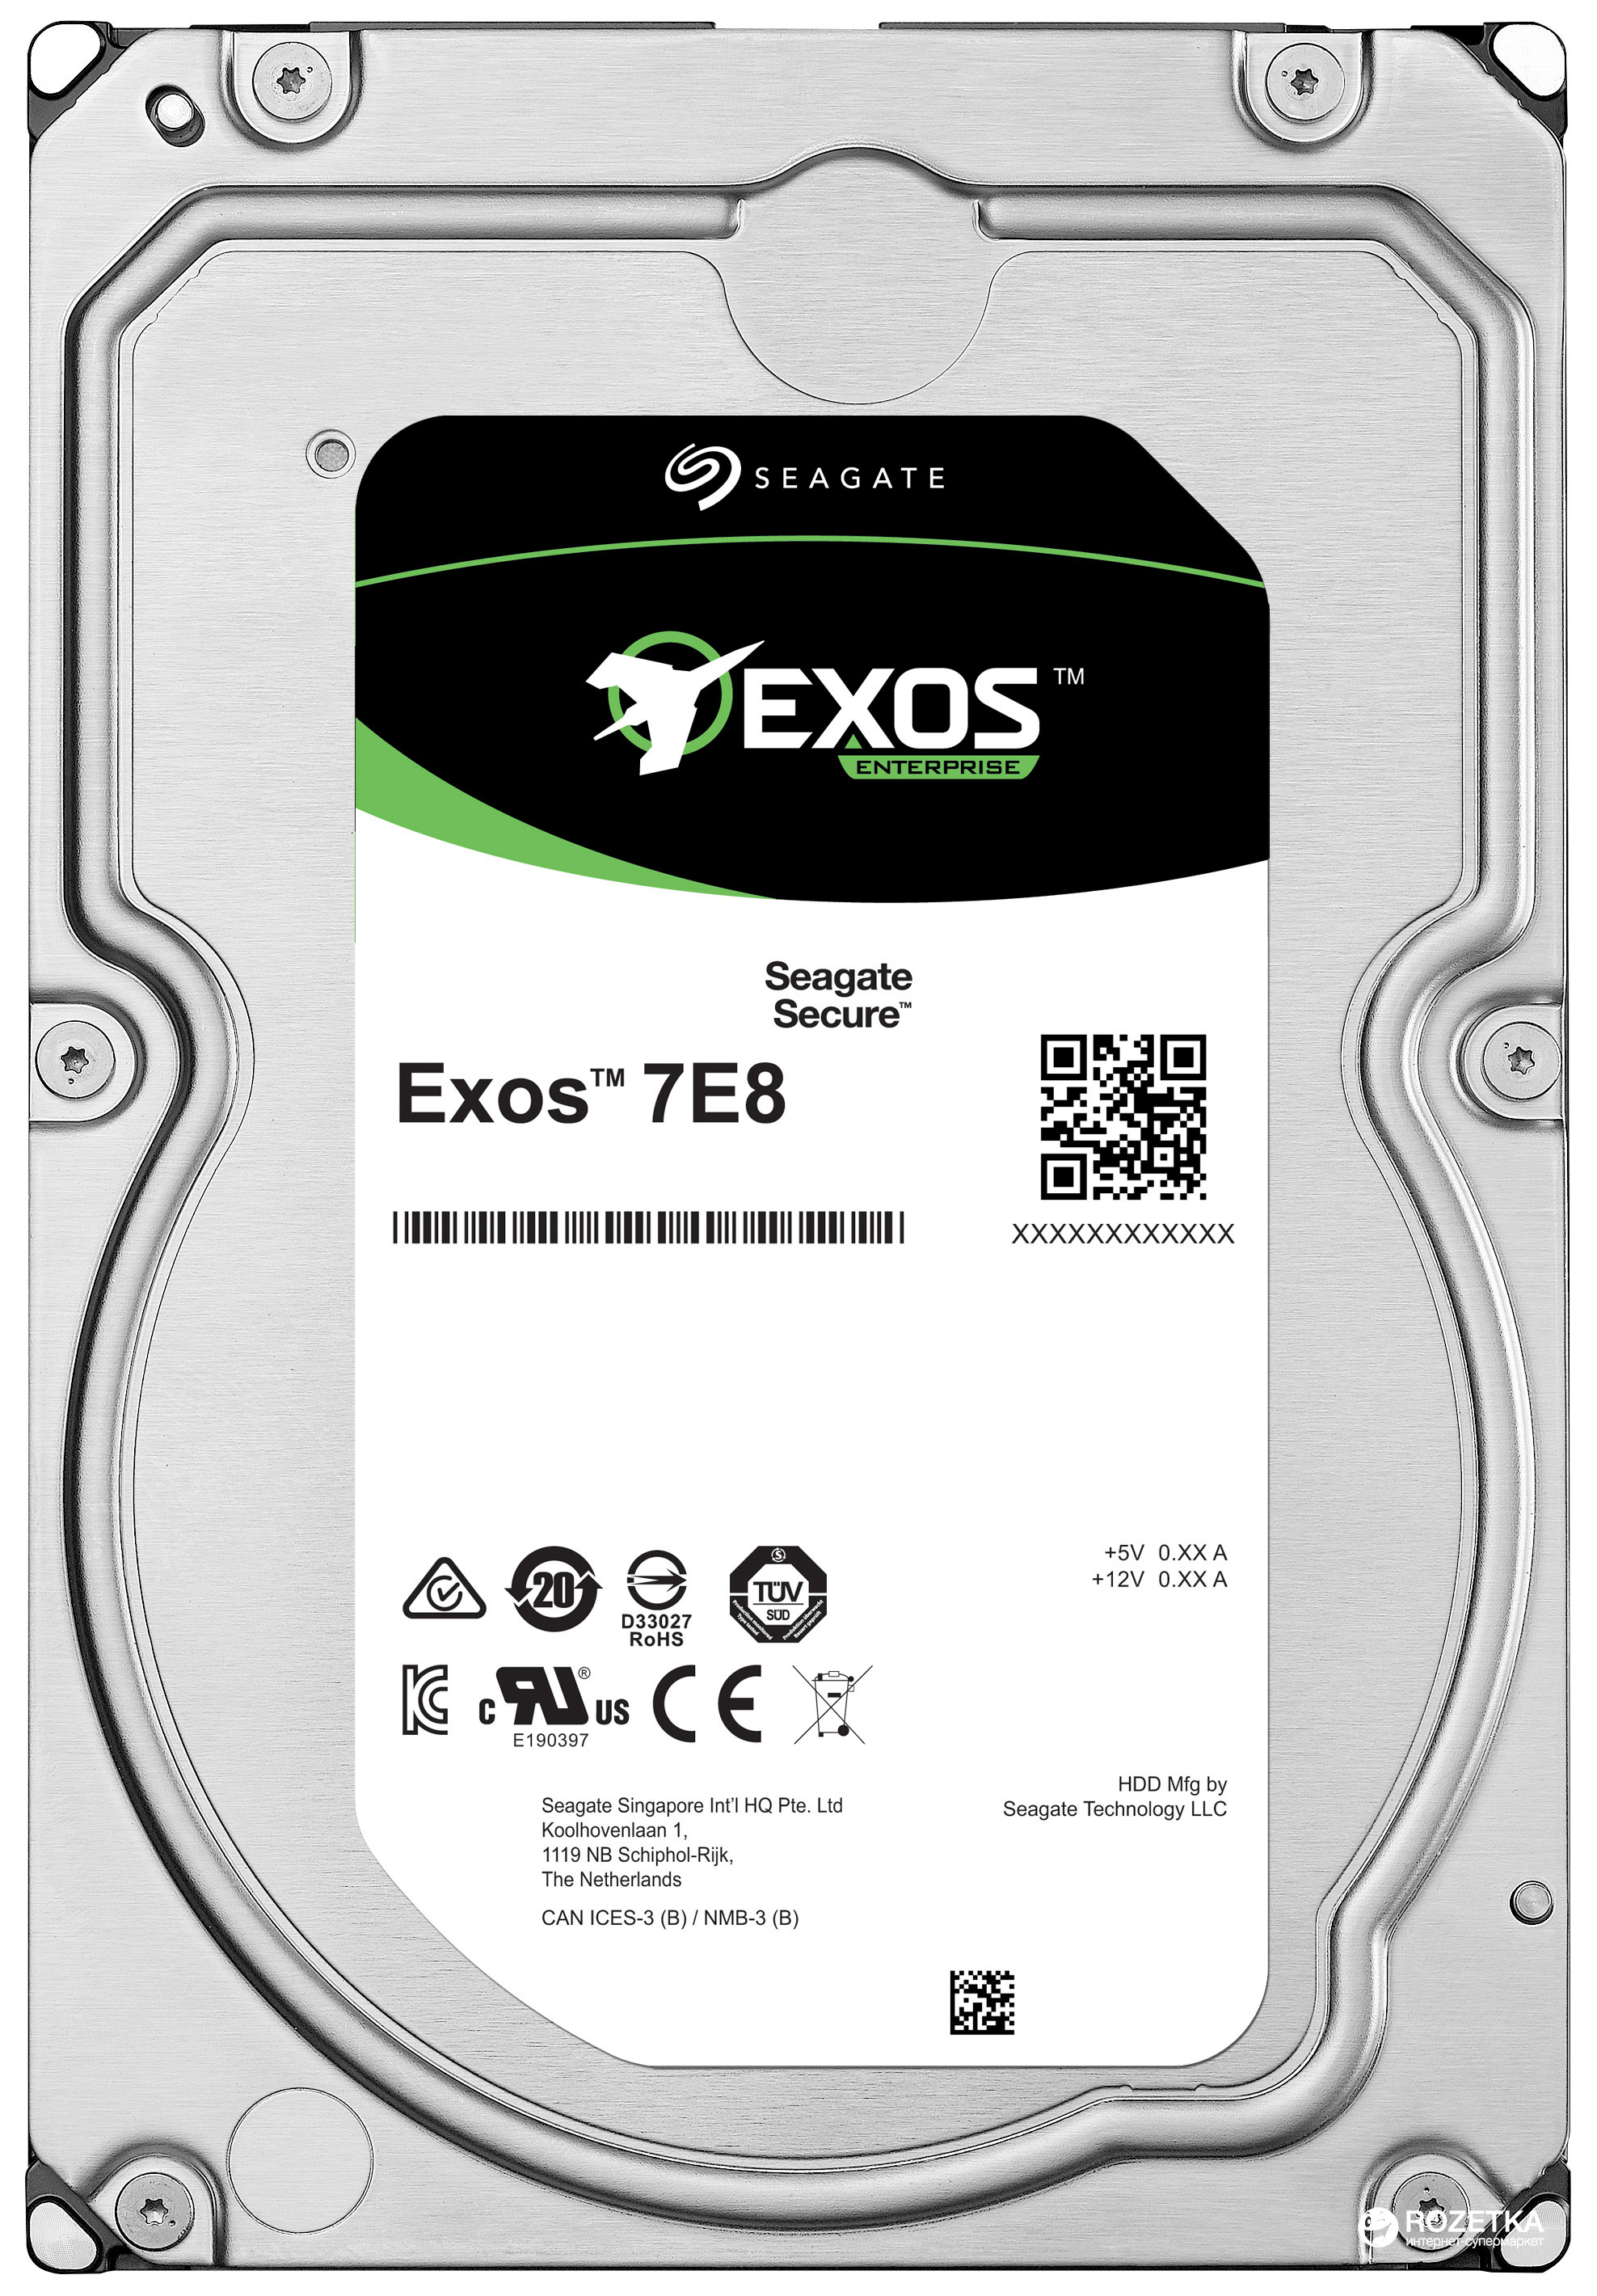 Seagate 1TB Exos 7E8 SAS 3.5 Internal HDD